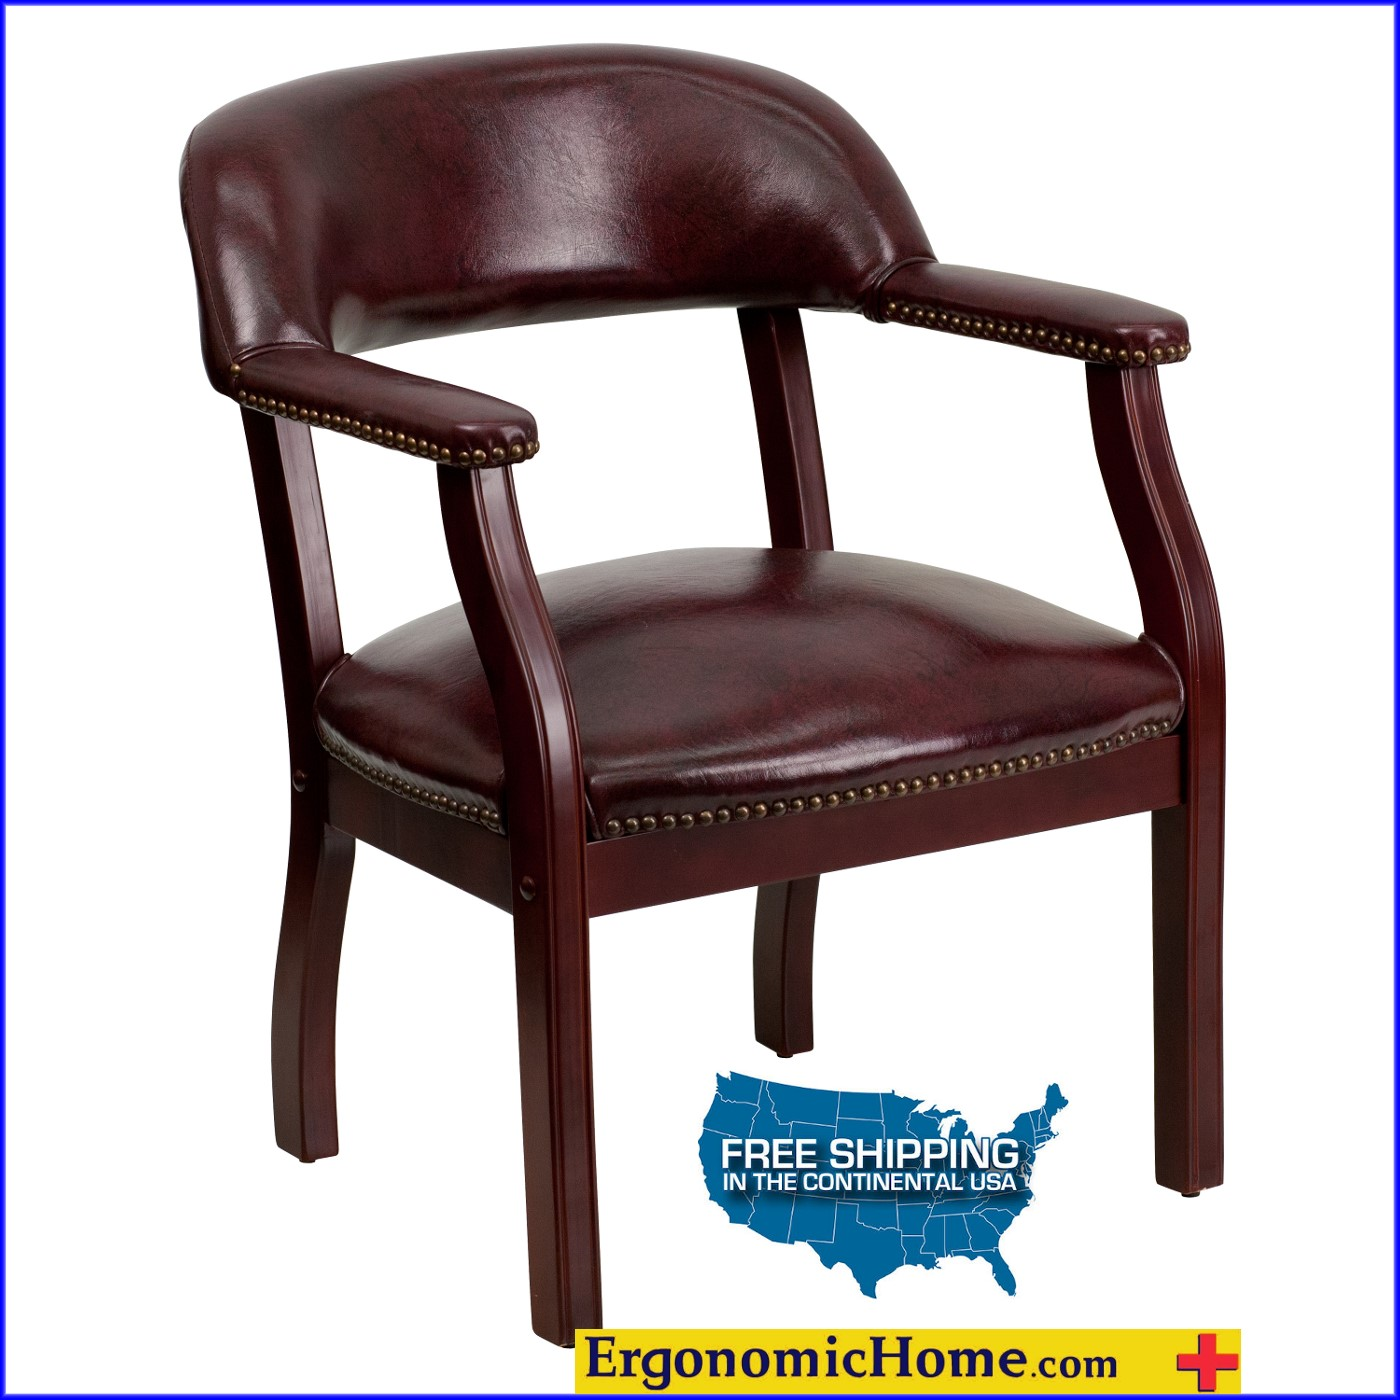 Ergonomic Home Oxblood Vinyl Luxurious Conference Chair/Guest Chair EH-B-Z105-OXBLOOD-GG .